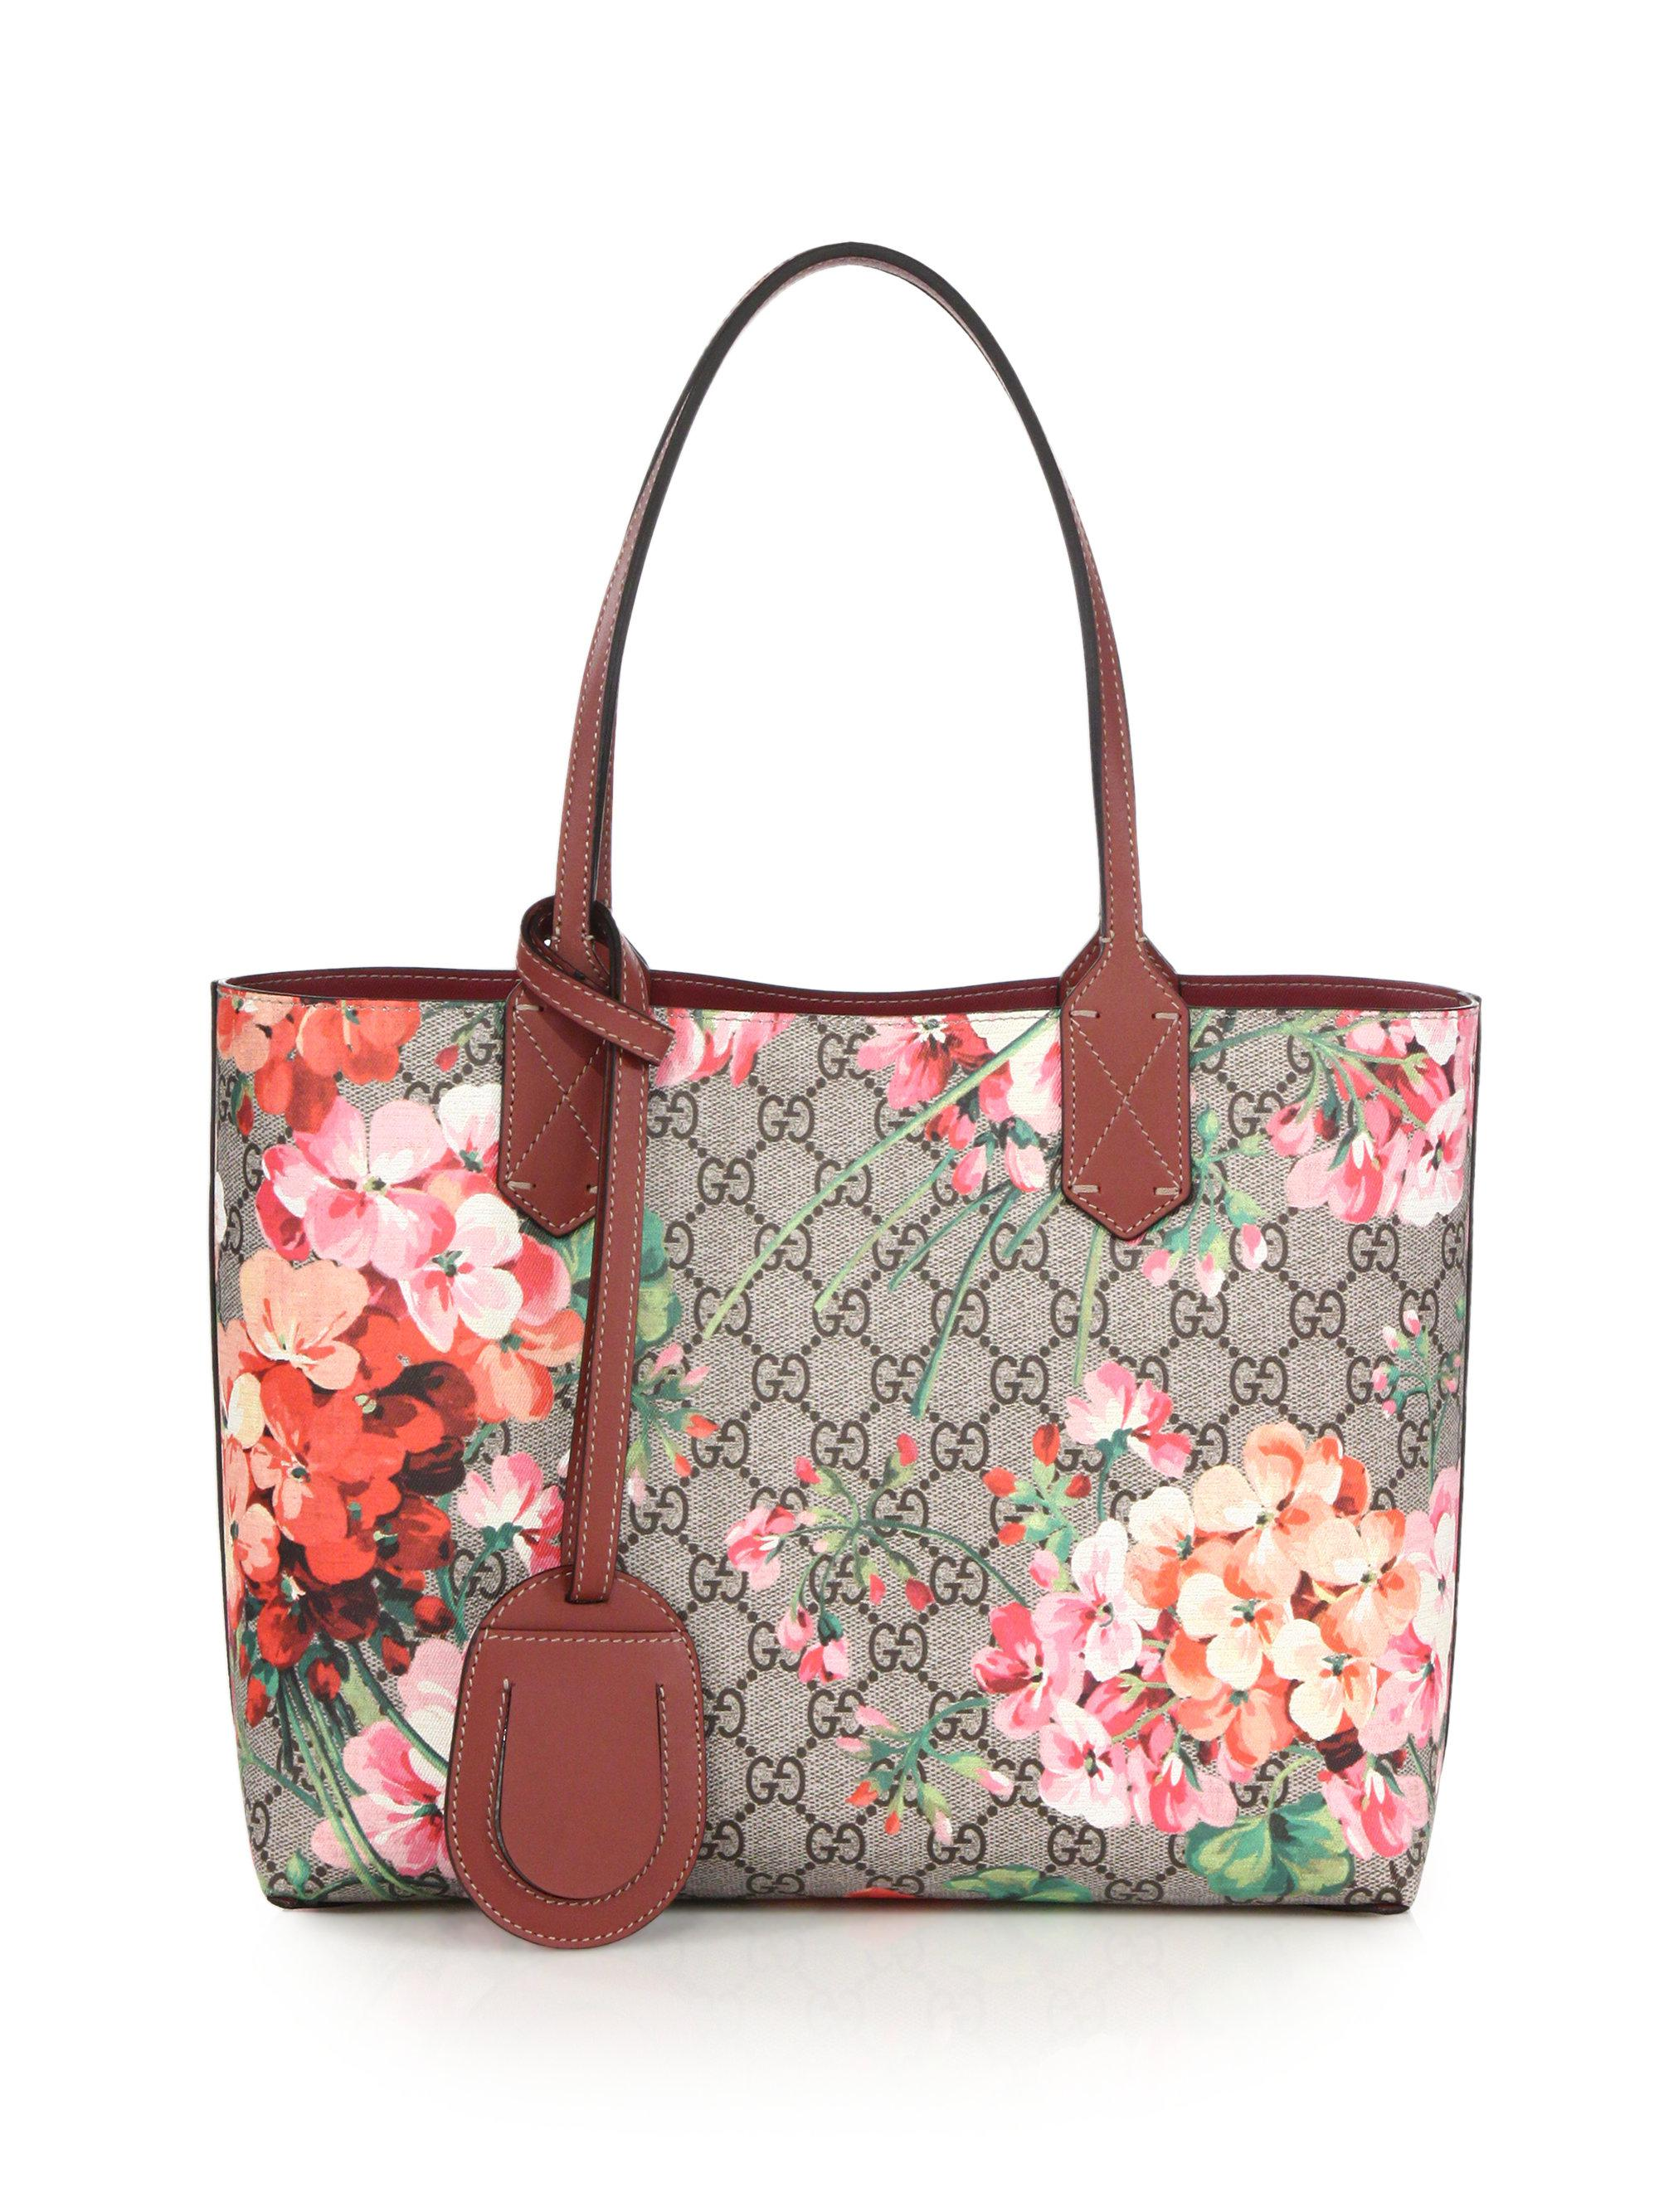 6705f9d97c6d Gucci Gg Blooms Small Reversible Tote in Pink - Lyst